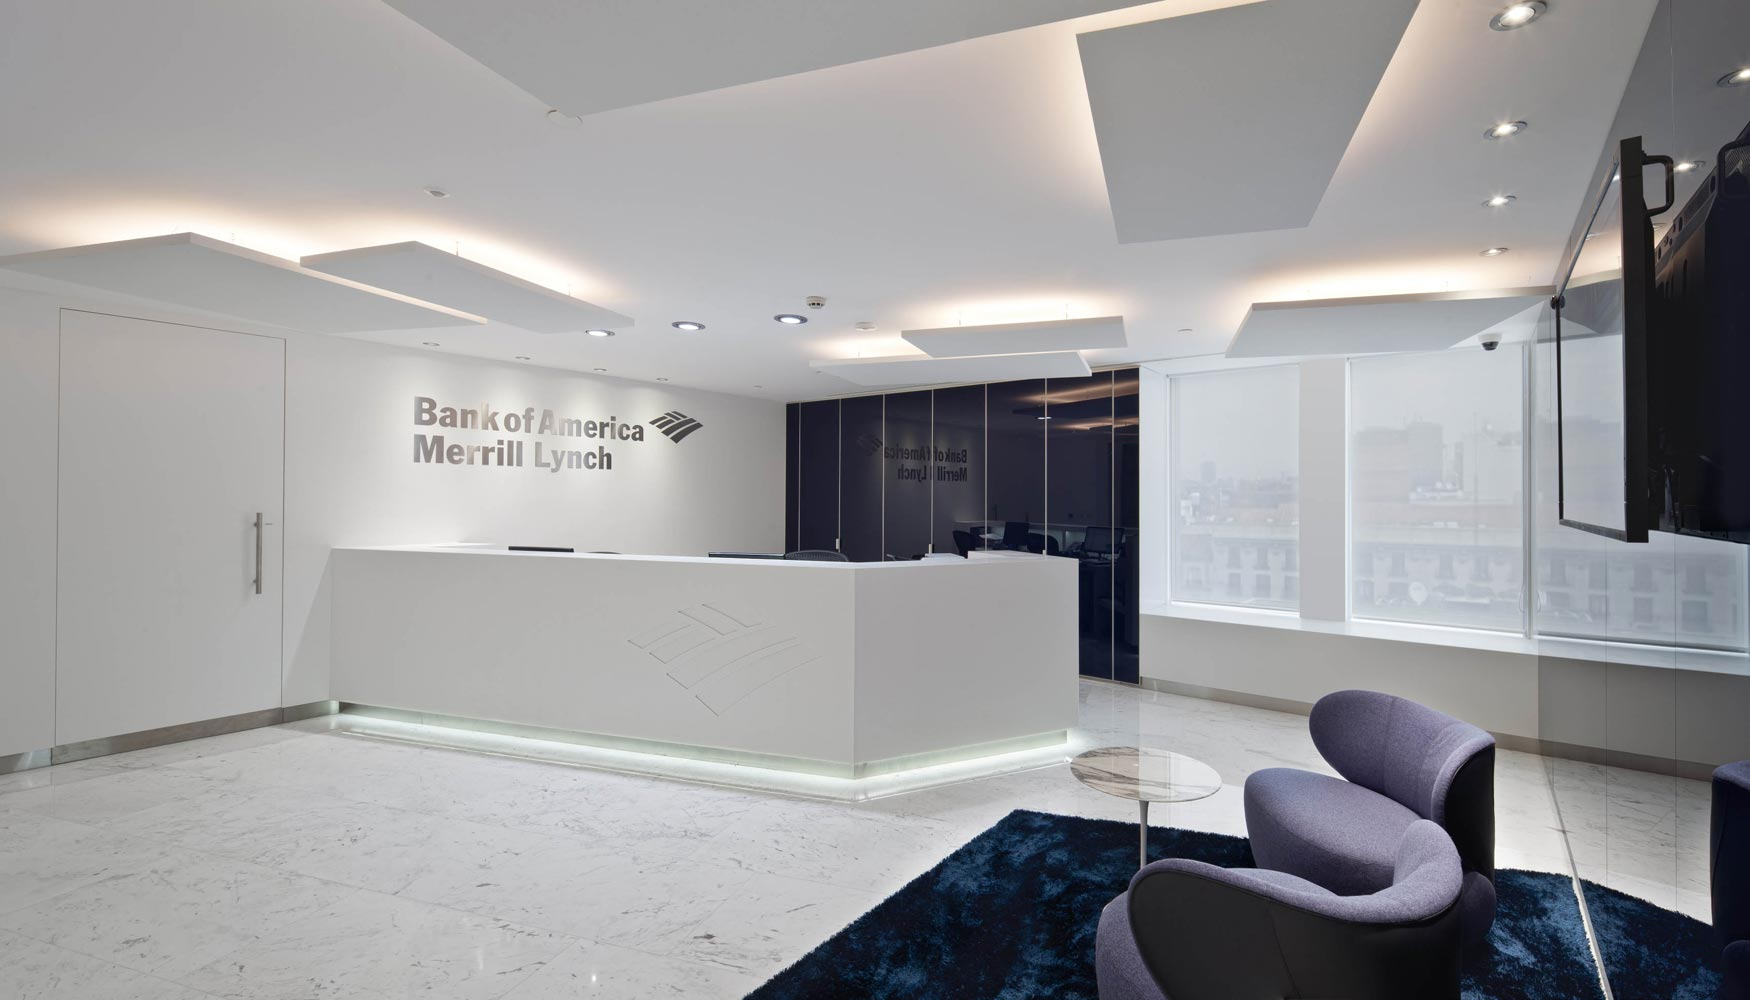 Bank of america merrill lynch traslada su sede en espa a a - Evo bank oficinas ...